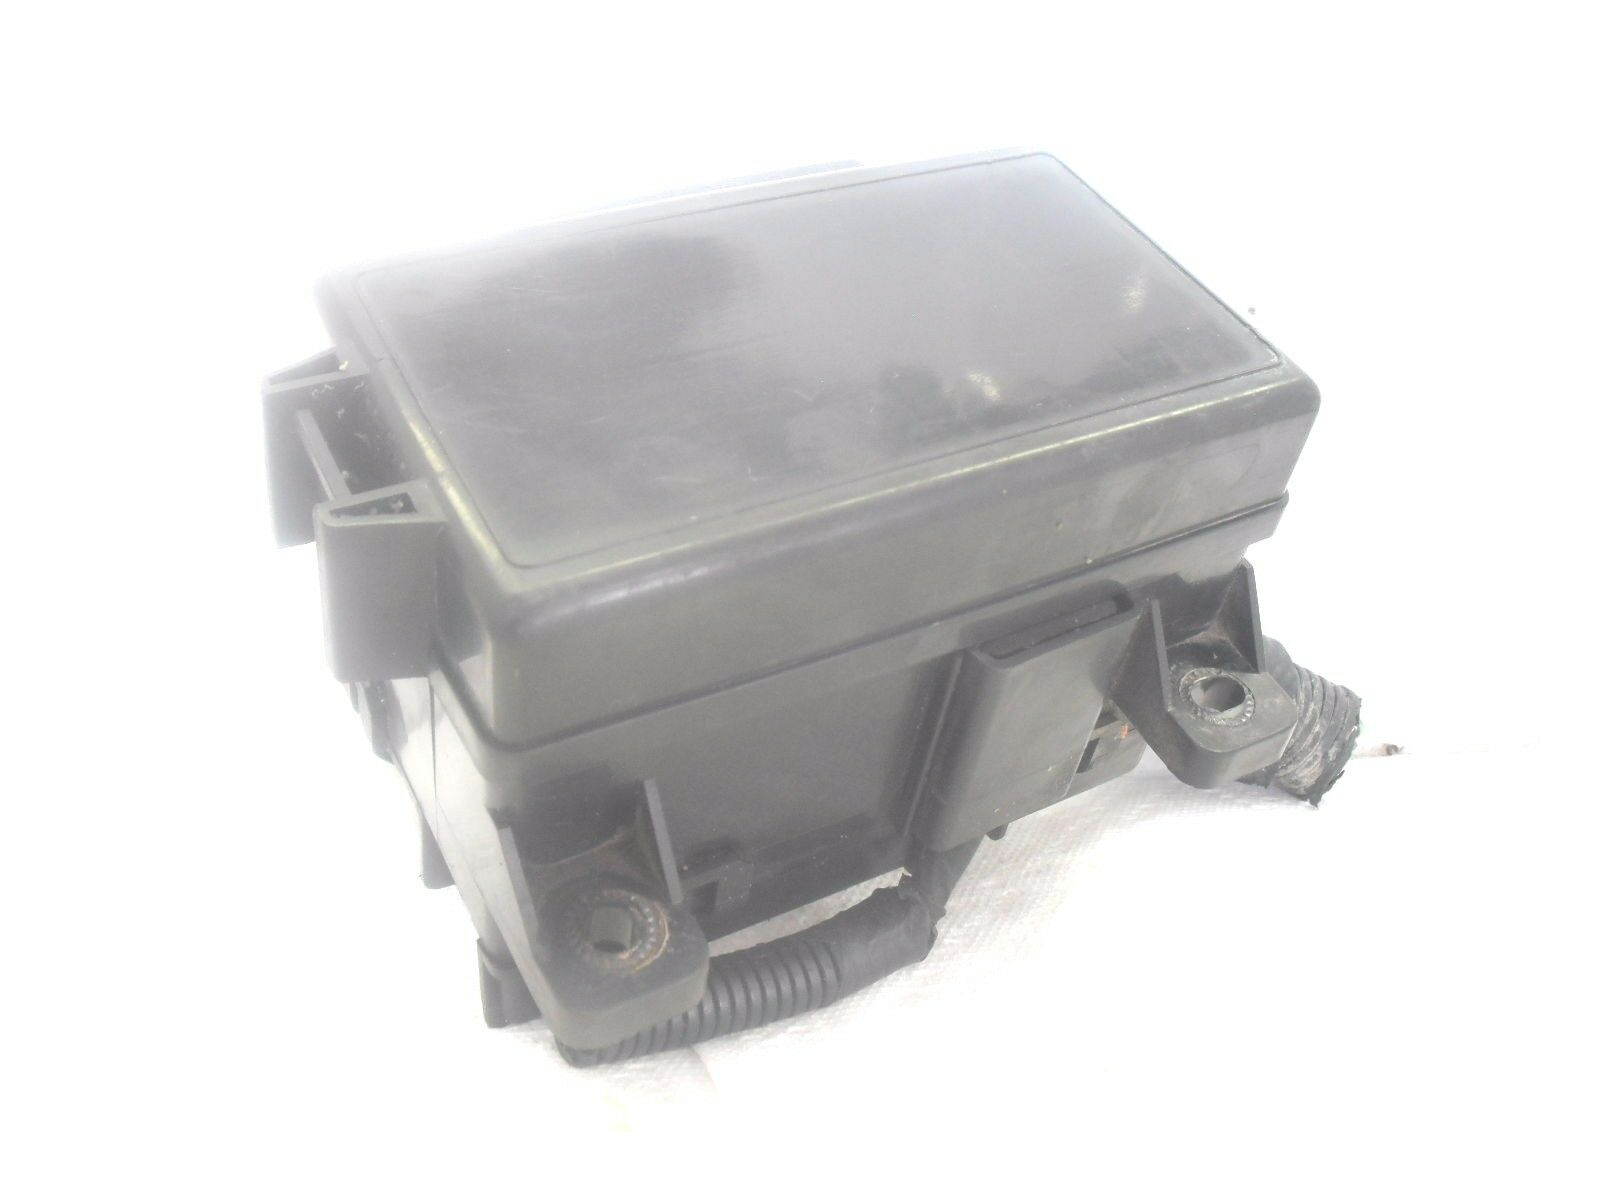 01 02 Kia Sportage Under Hood Fuse Box Panel Block Oem Relay Power Peugeot 307 Bonnet Distribution 1 Of 1only Available See More